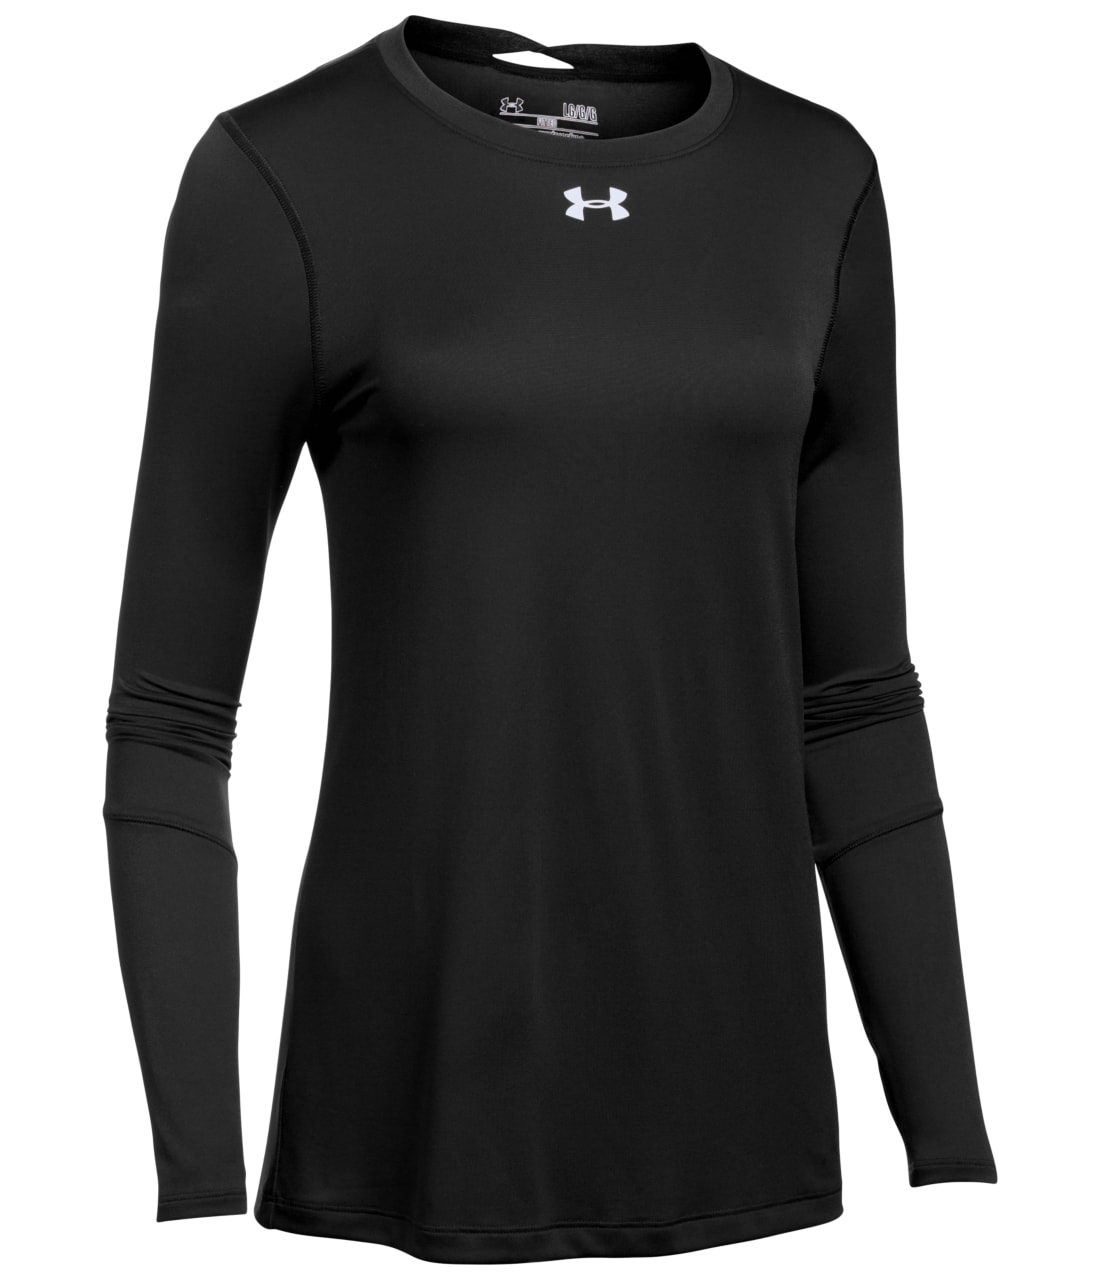 Picture of UNDER ARMOUR Ladies' Long Sleeve Locker T-Shirt